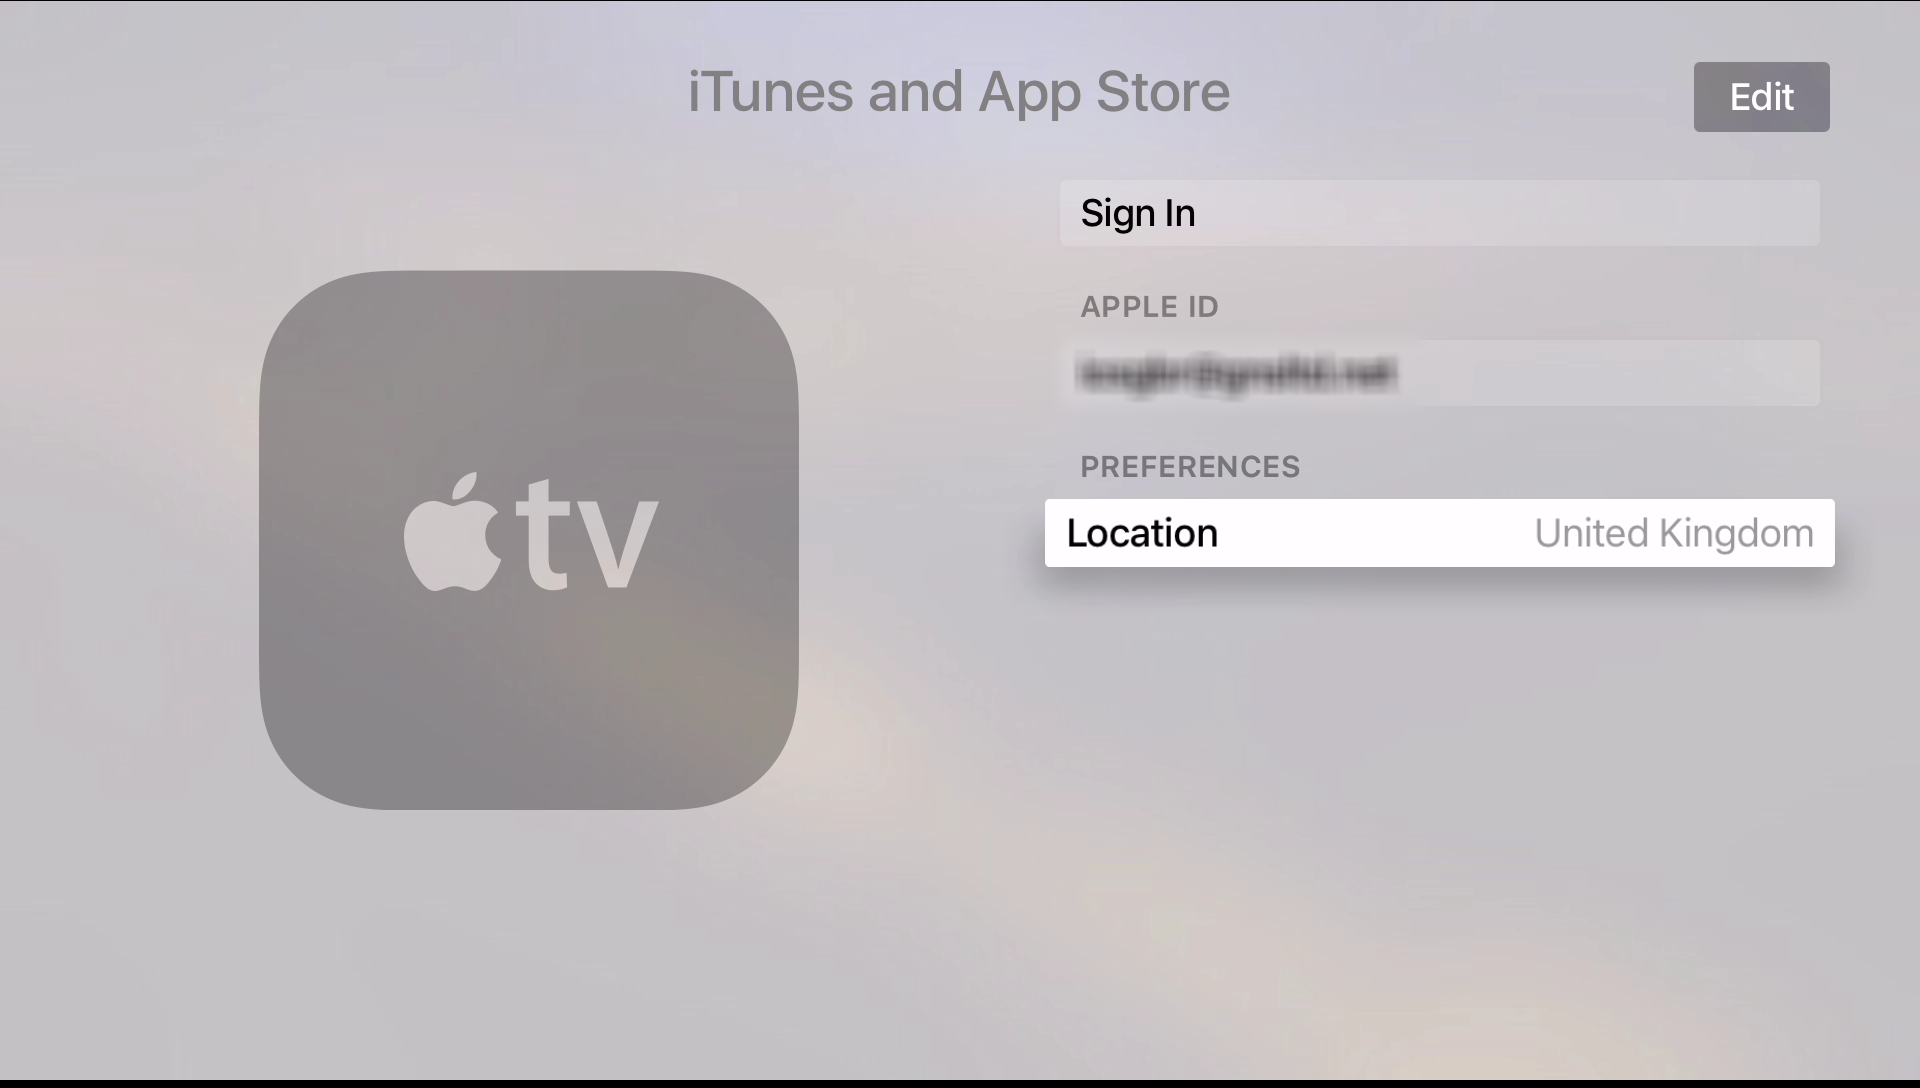 Apple TV 4 Sign In Account page